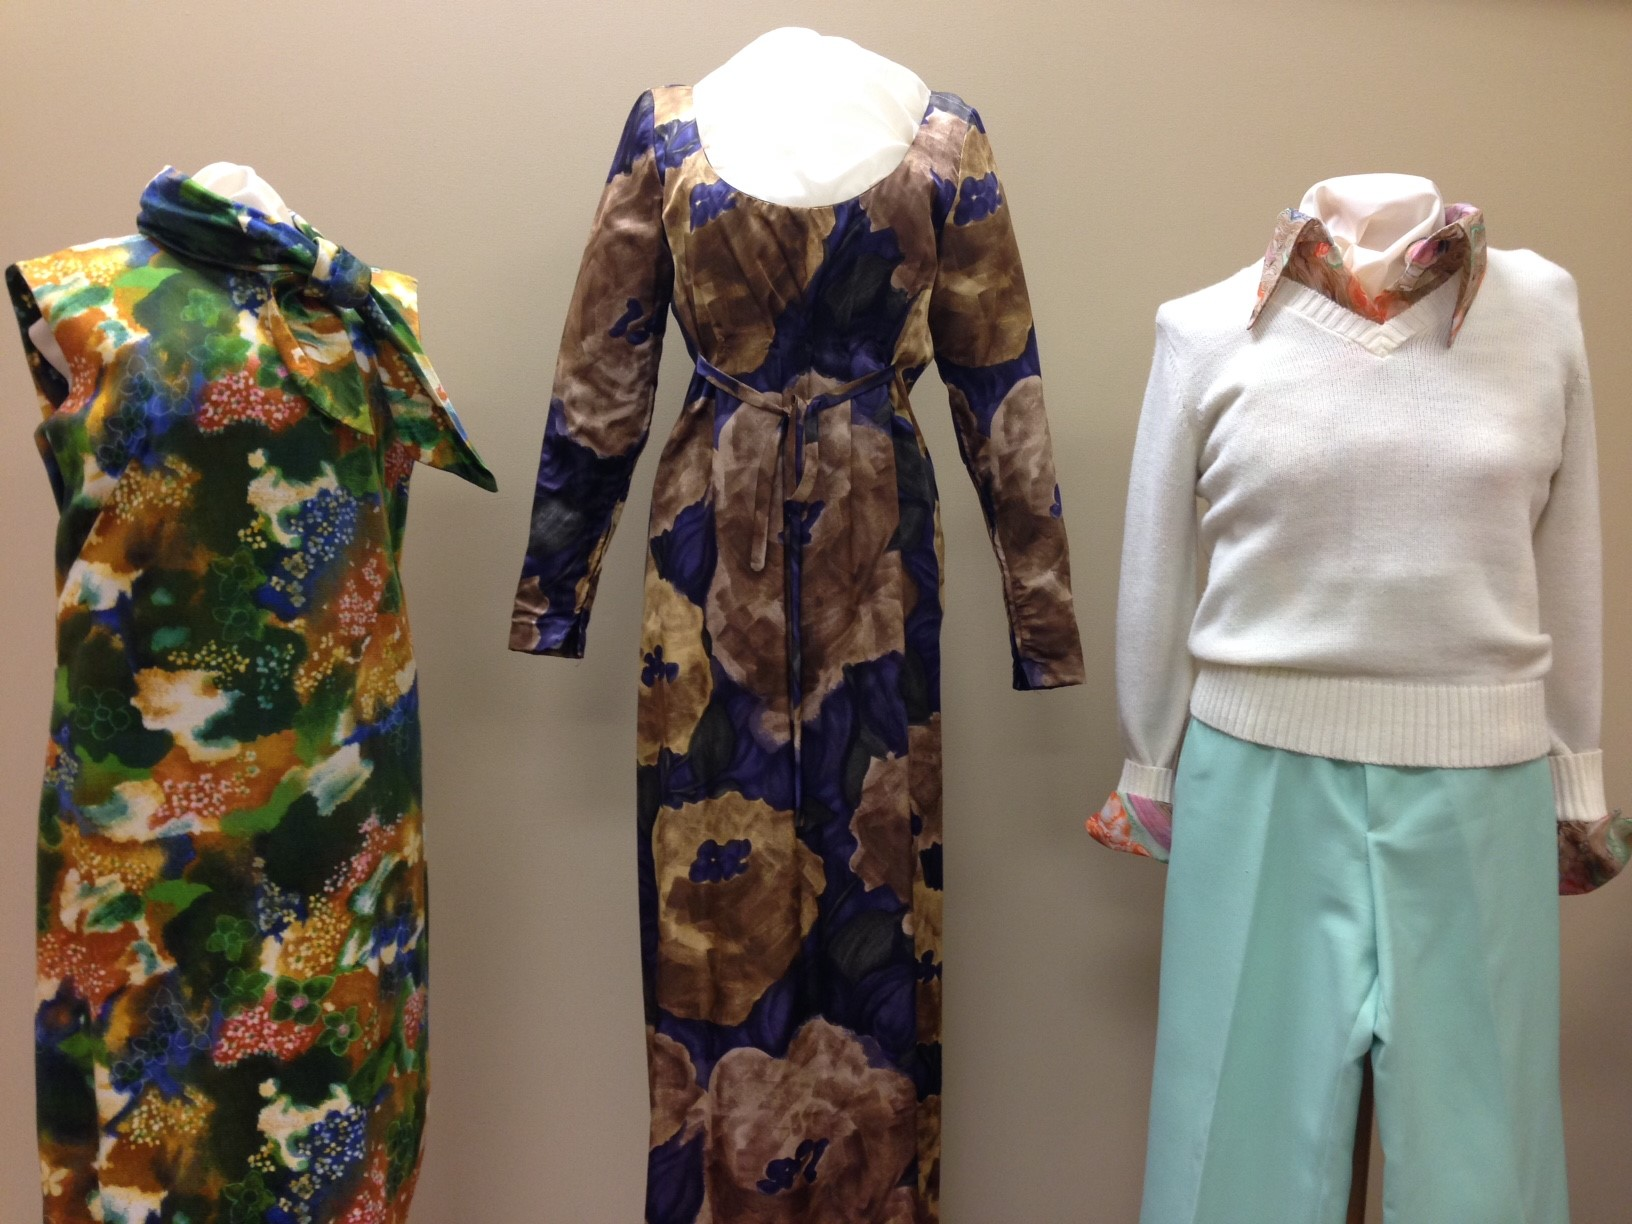 Garments on exhibition in the Lois Jett Historic Costume Collection gallery